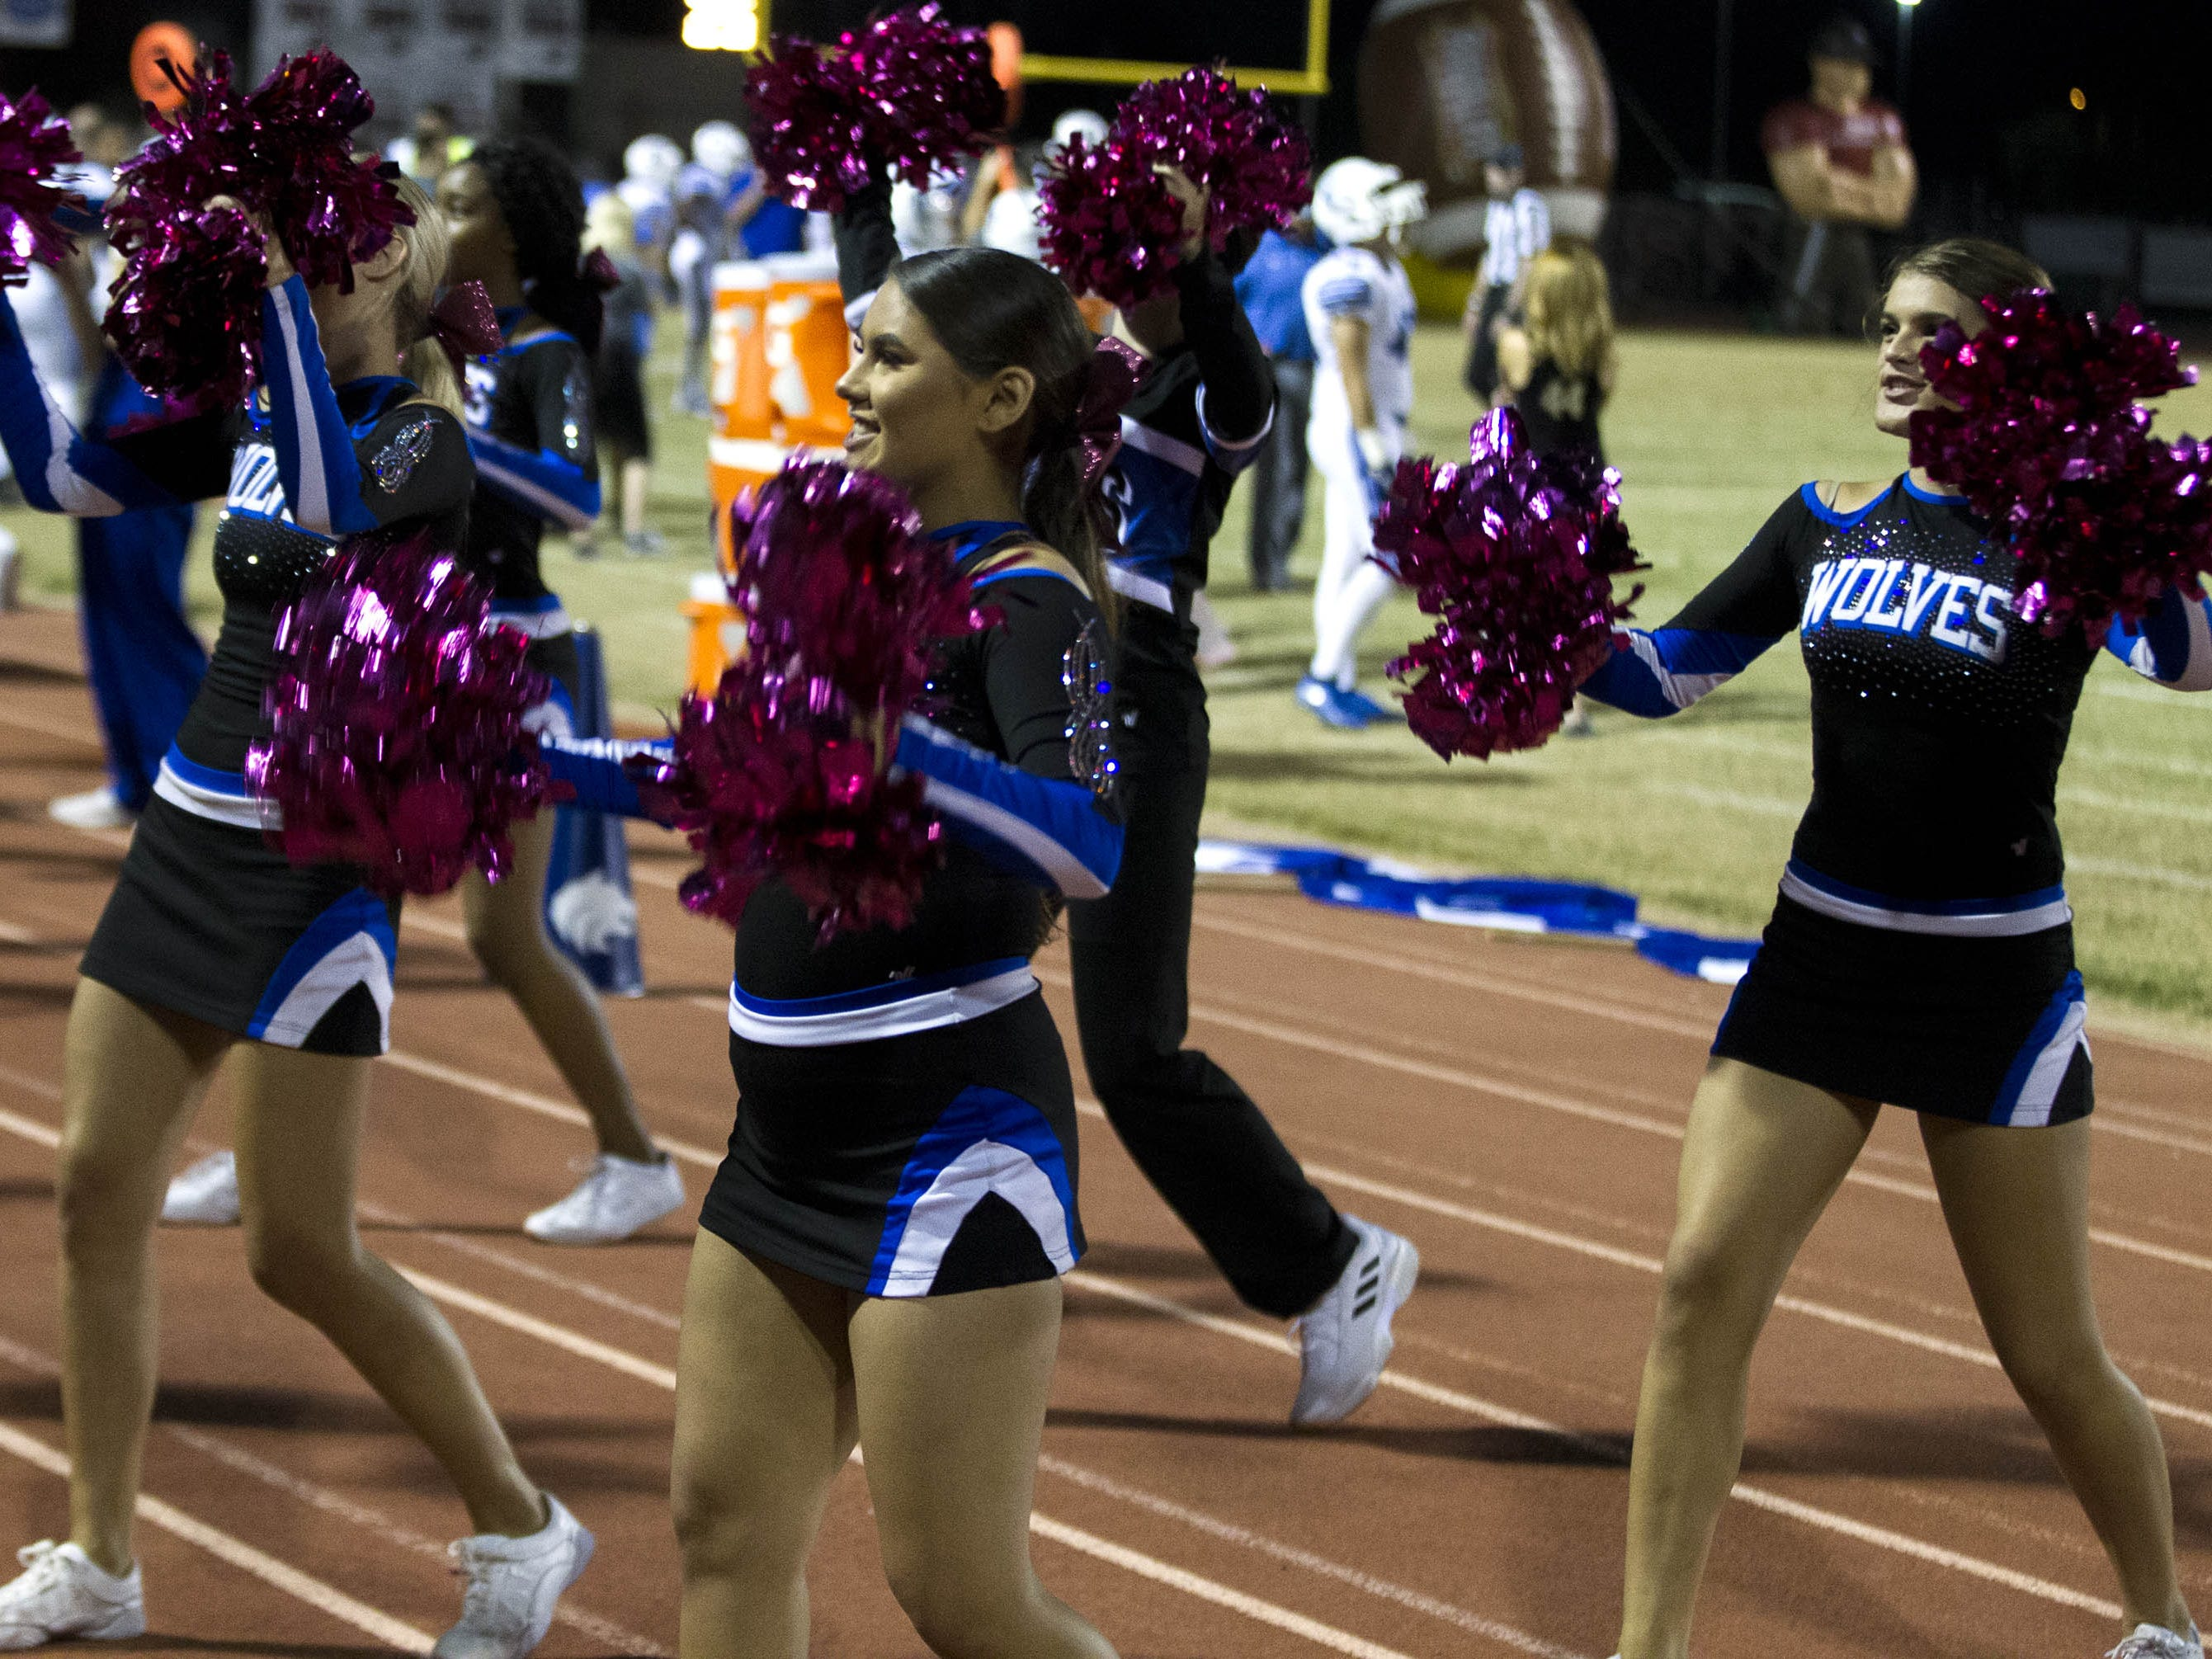 Chandler High School cheerleaders do their thing before their game against crosstown rivals the Hamilton Huskies in Chandler, Friday, Oct. 26, 2018. #azhsfb